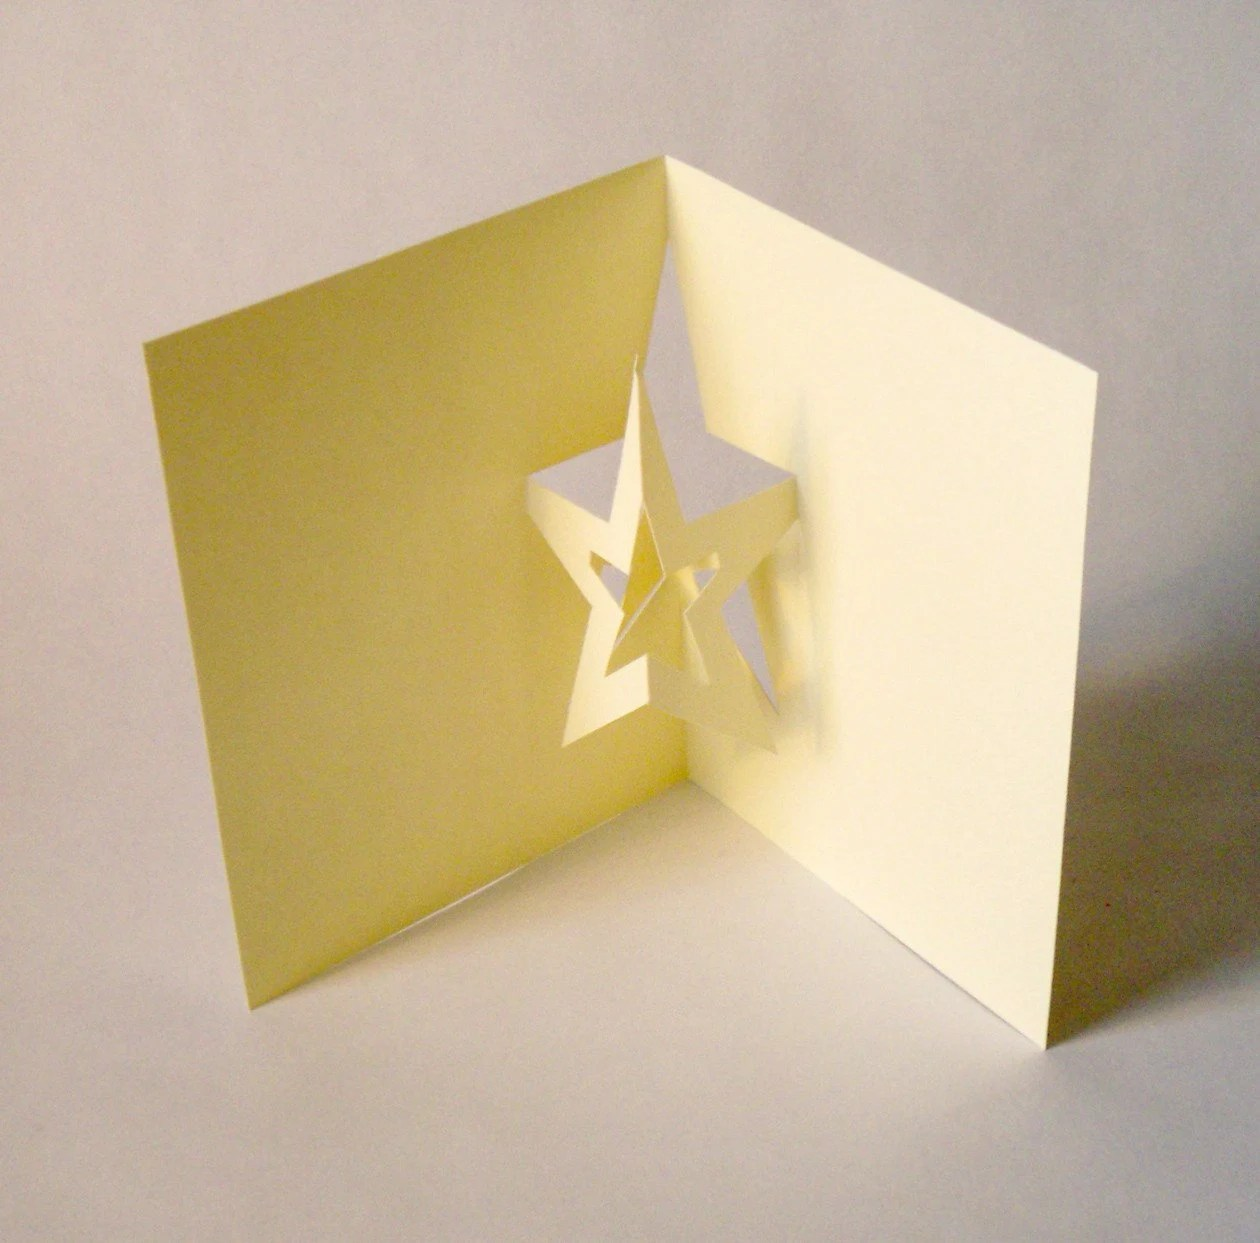 Items Similar To Star Pop Up Card On Etsy